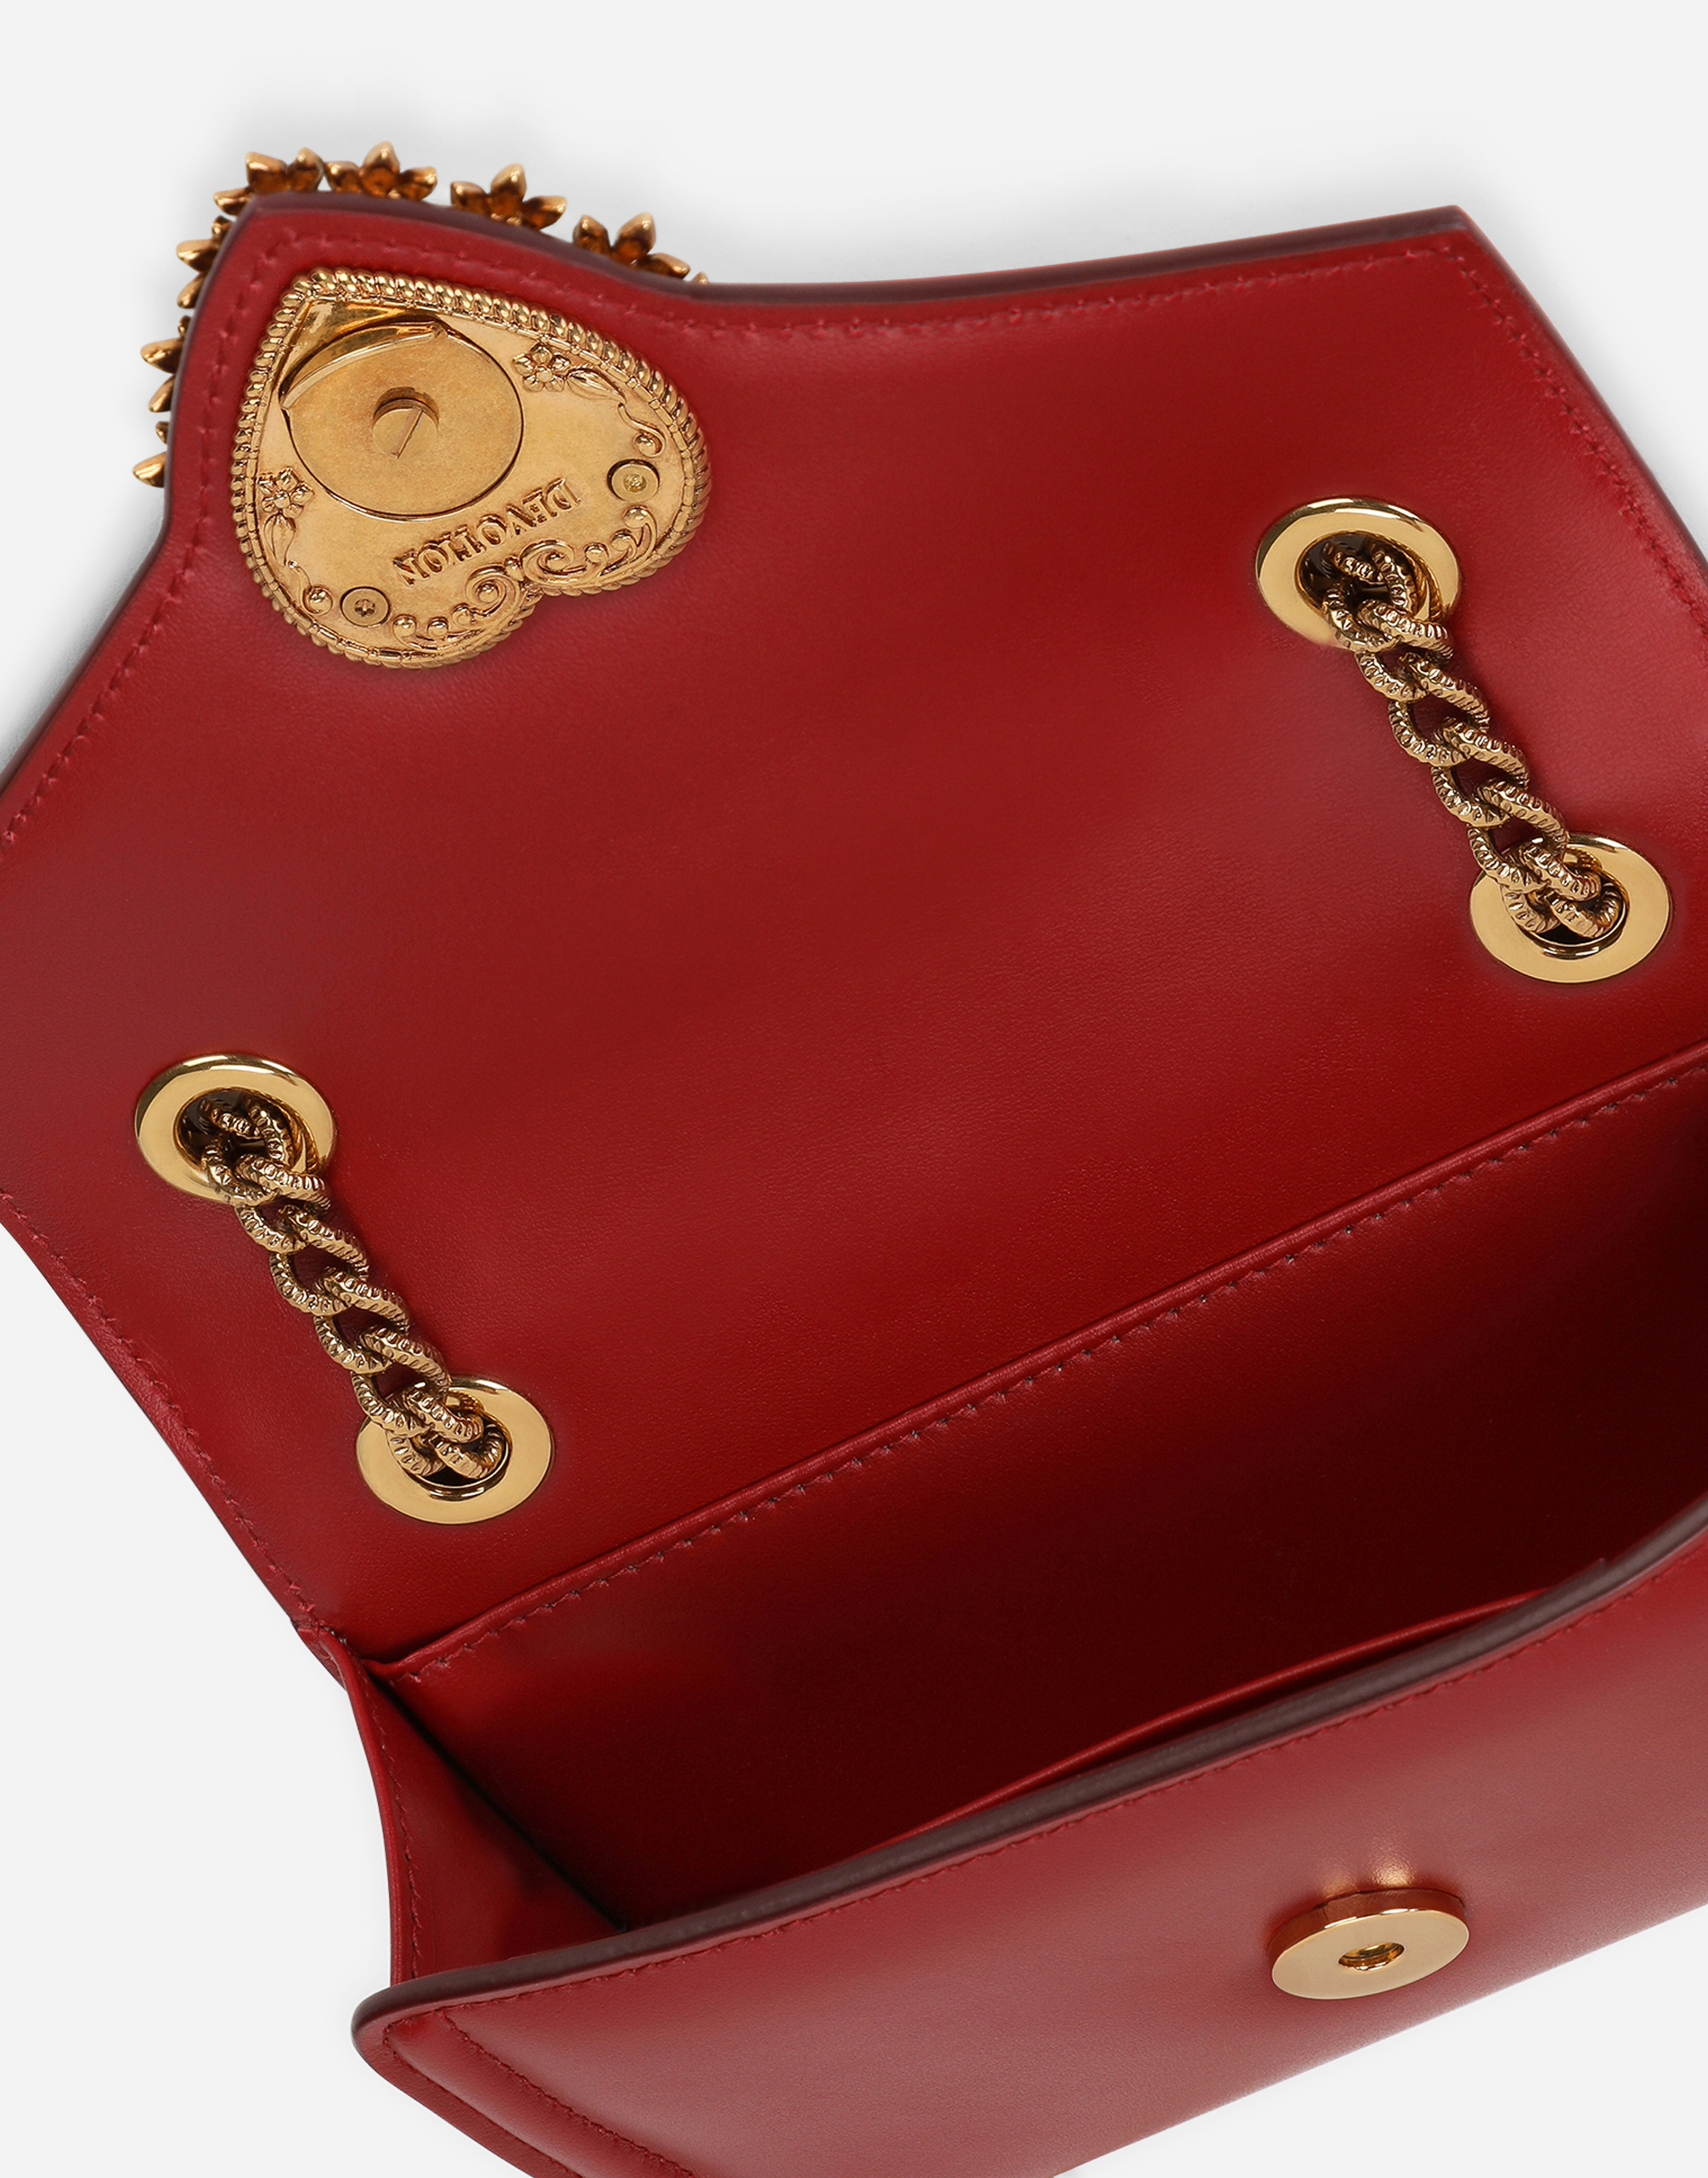 MINI DEVOTION BAG IN SMOOTH CALFSKIN